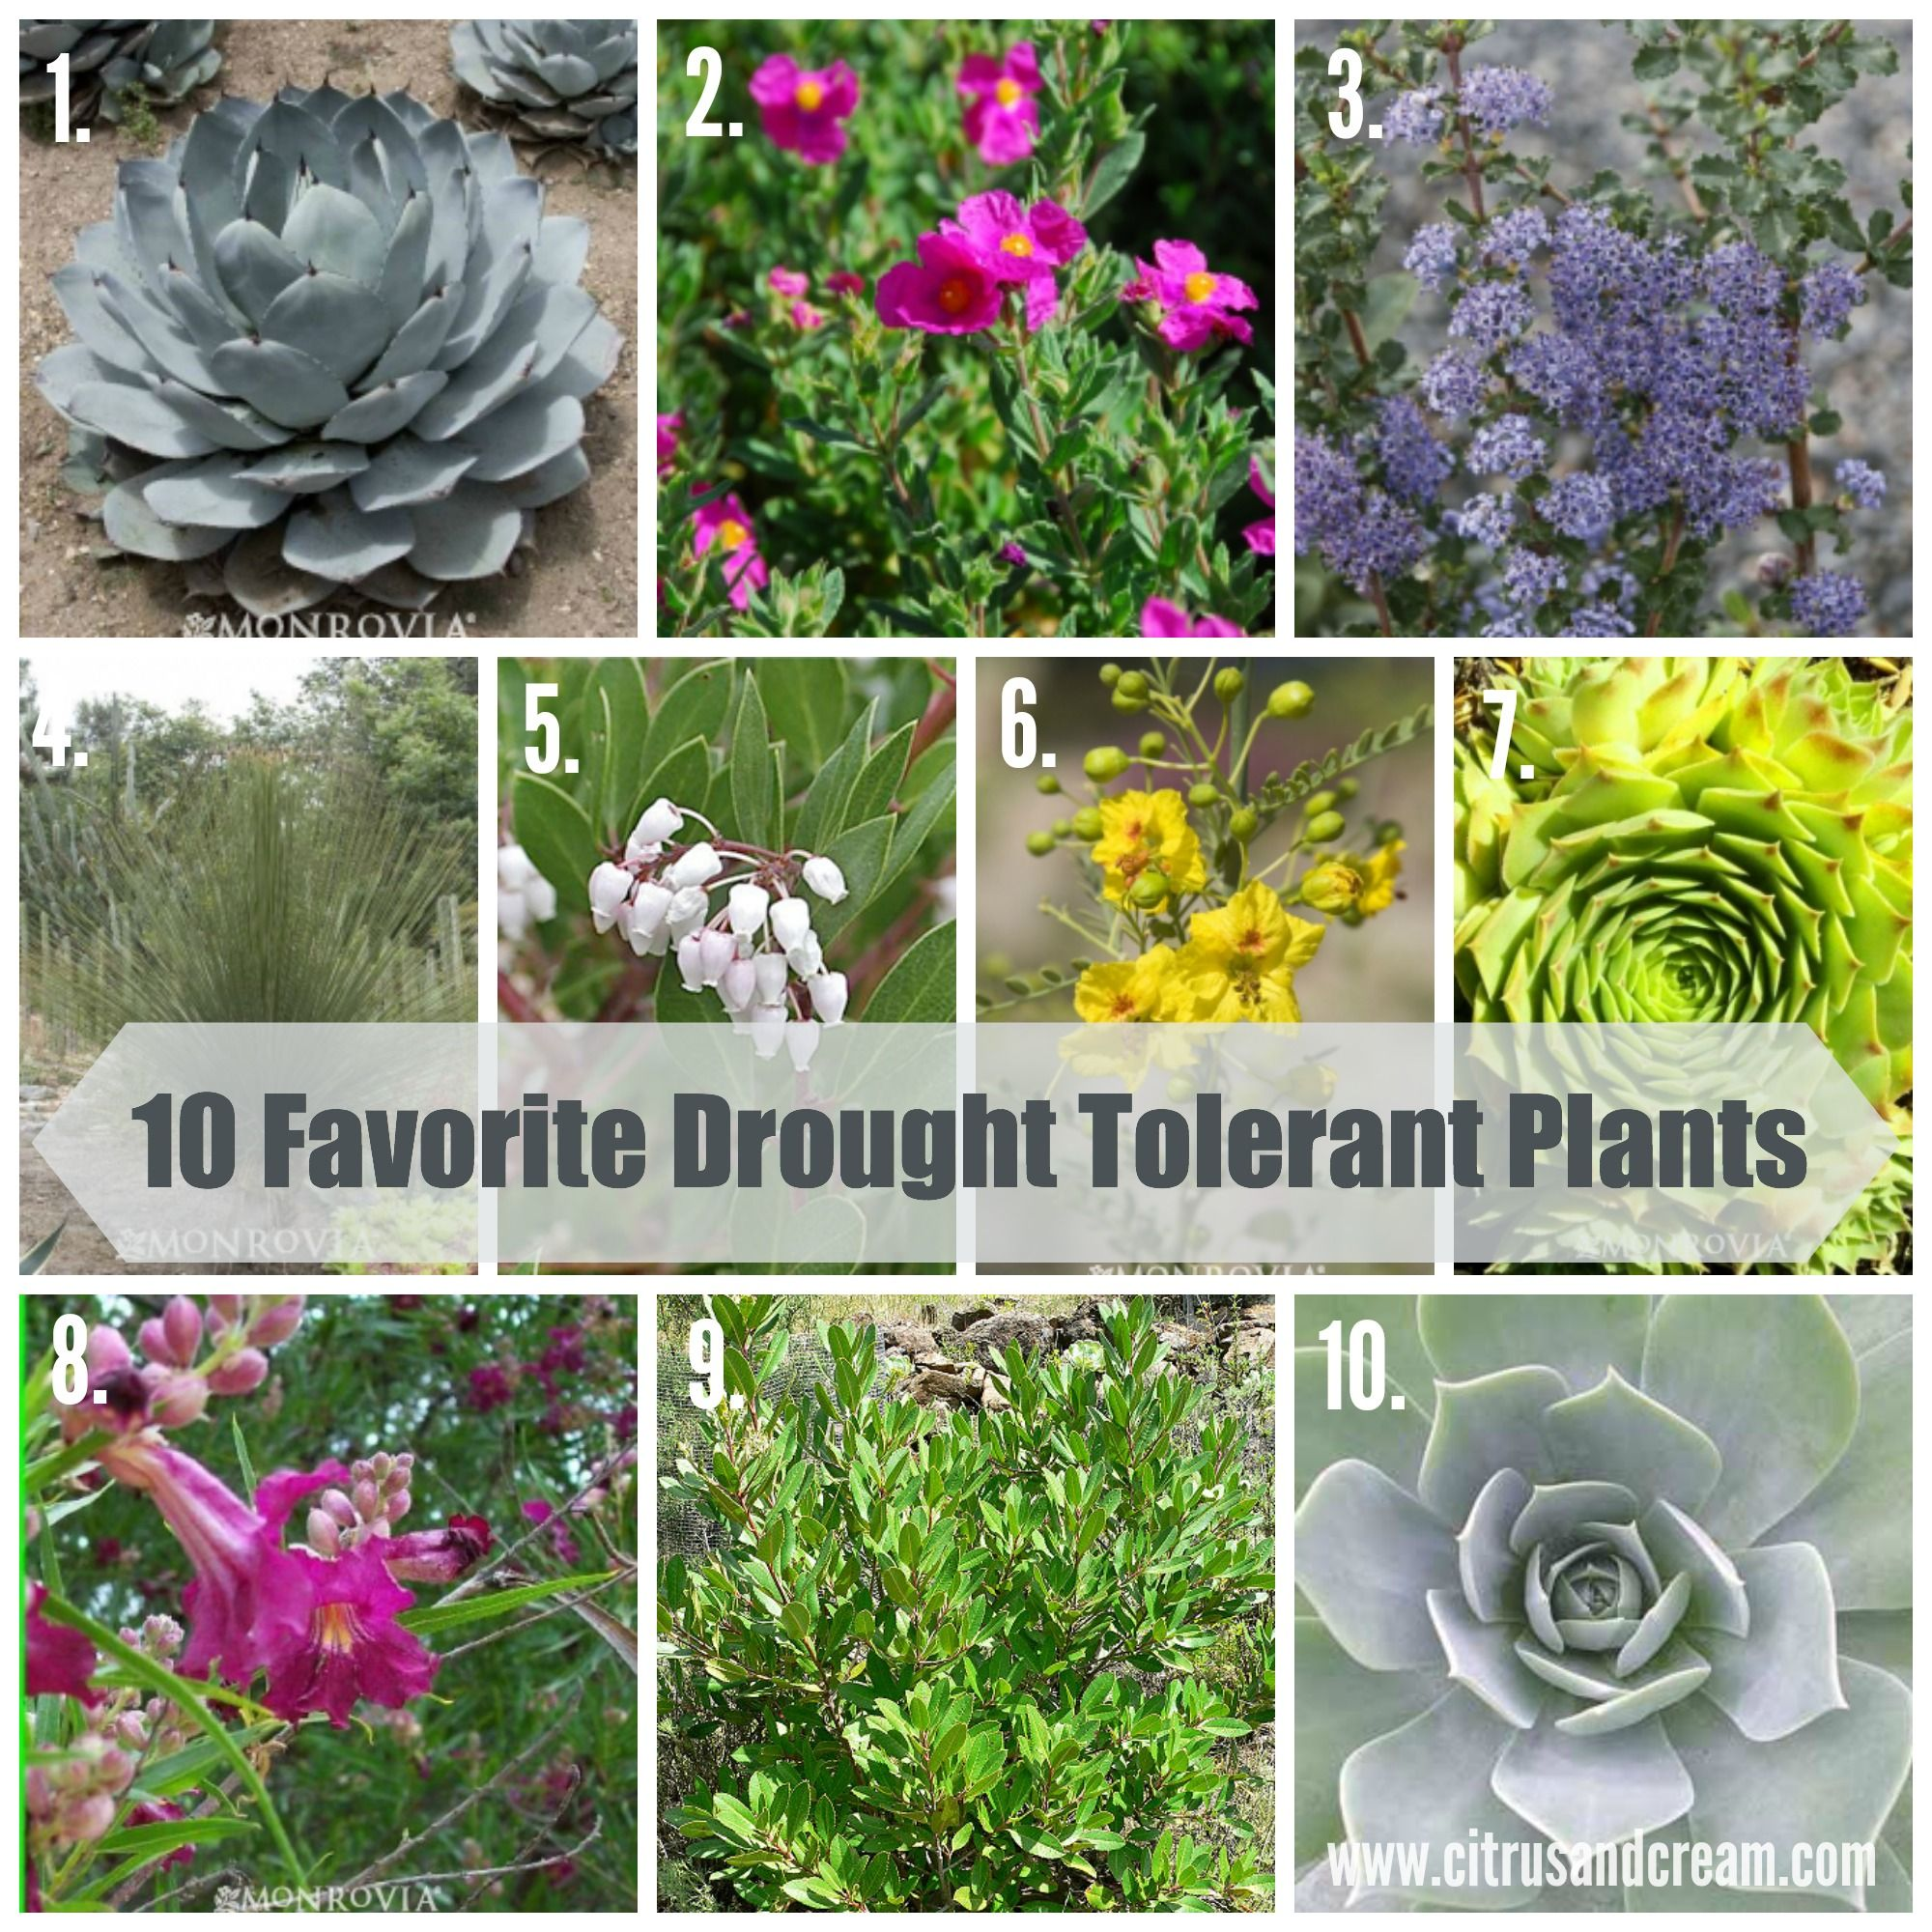 Drought Tolerant Plants Are A Necessity When Planning A Central Valley  Garden! These Ten Have